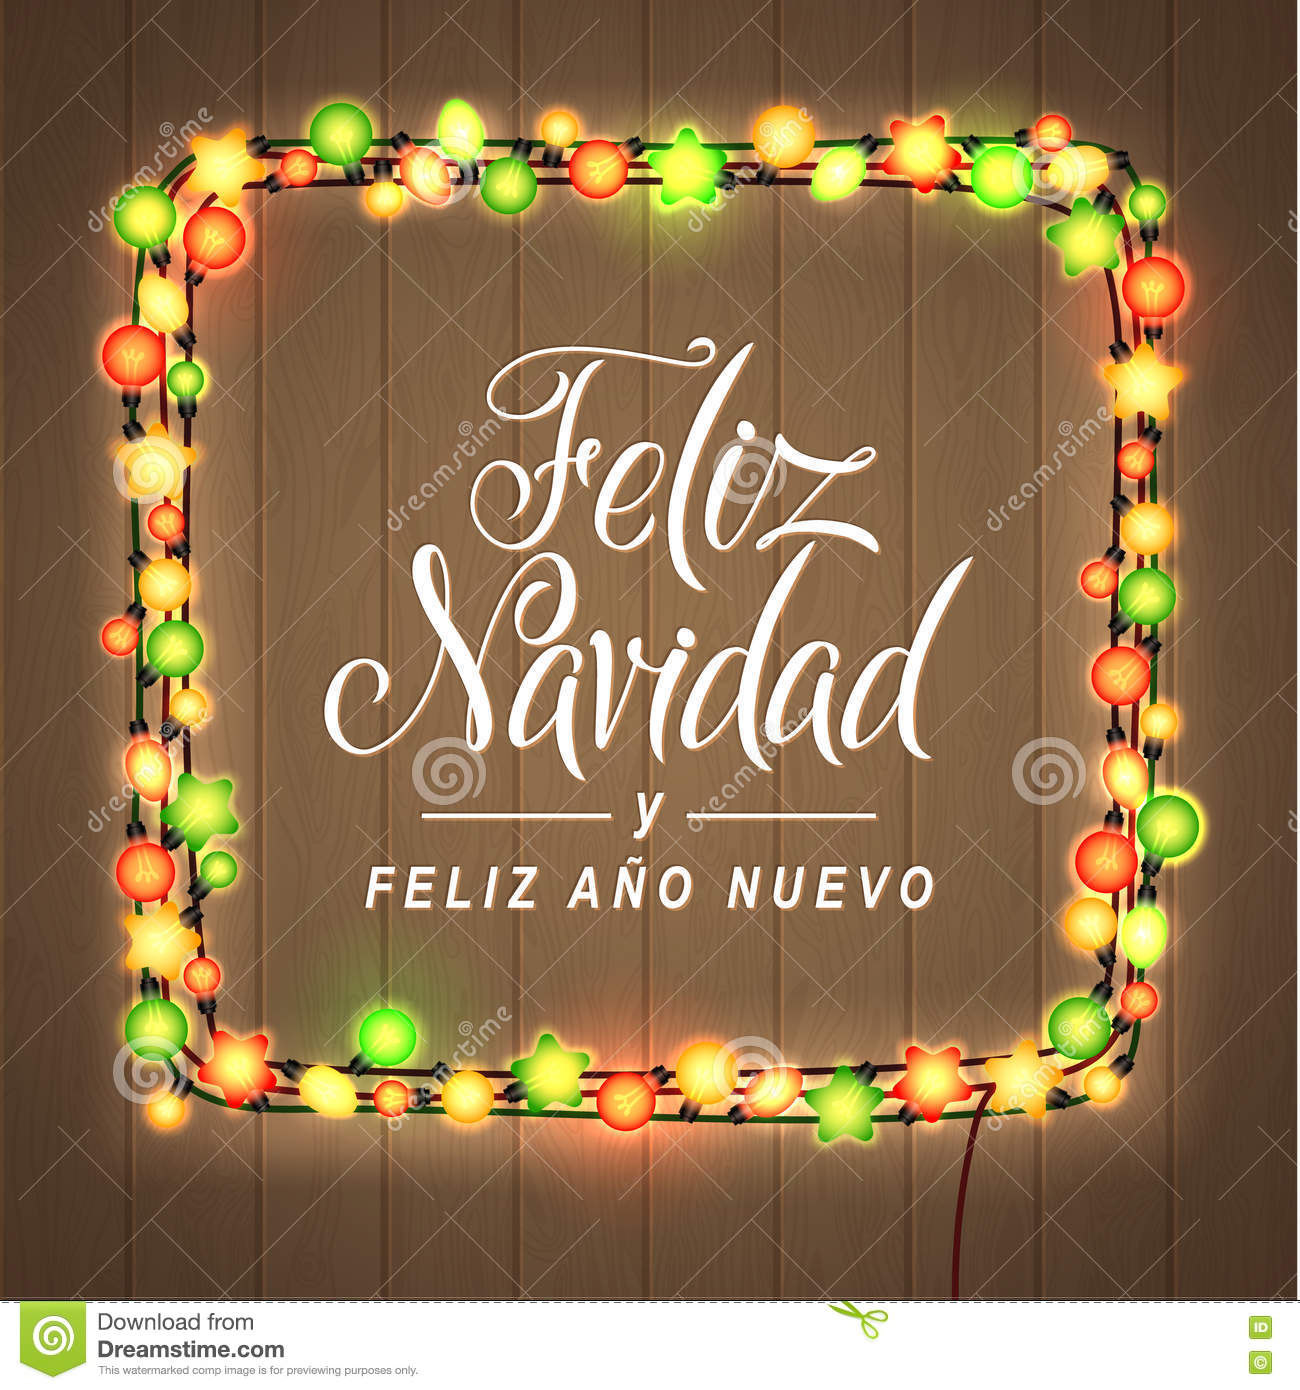 download merry christmas and happy new year spanish language glowing lights wreath for xmas